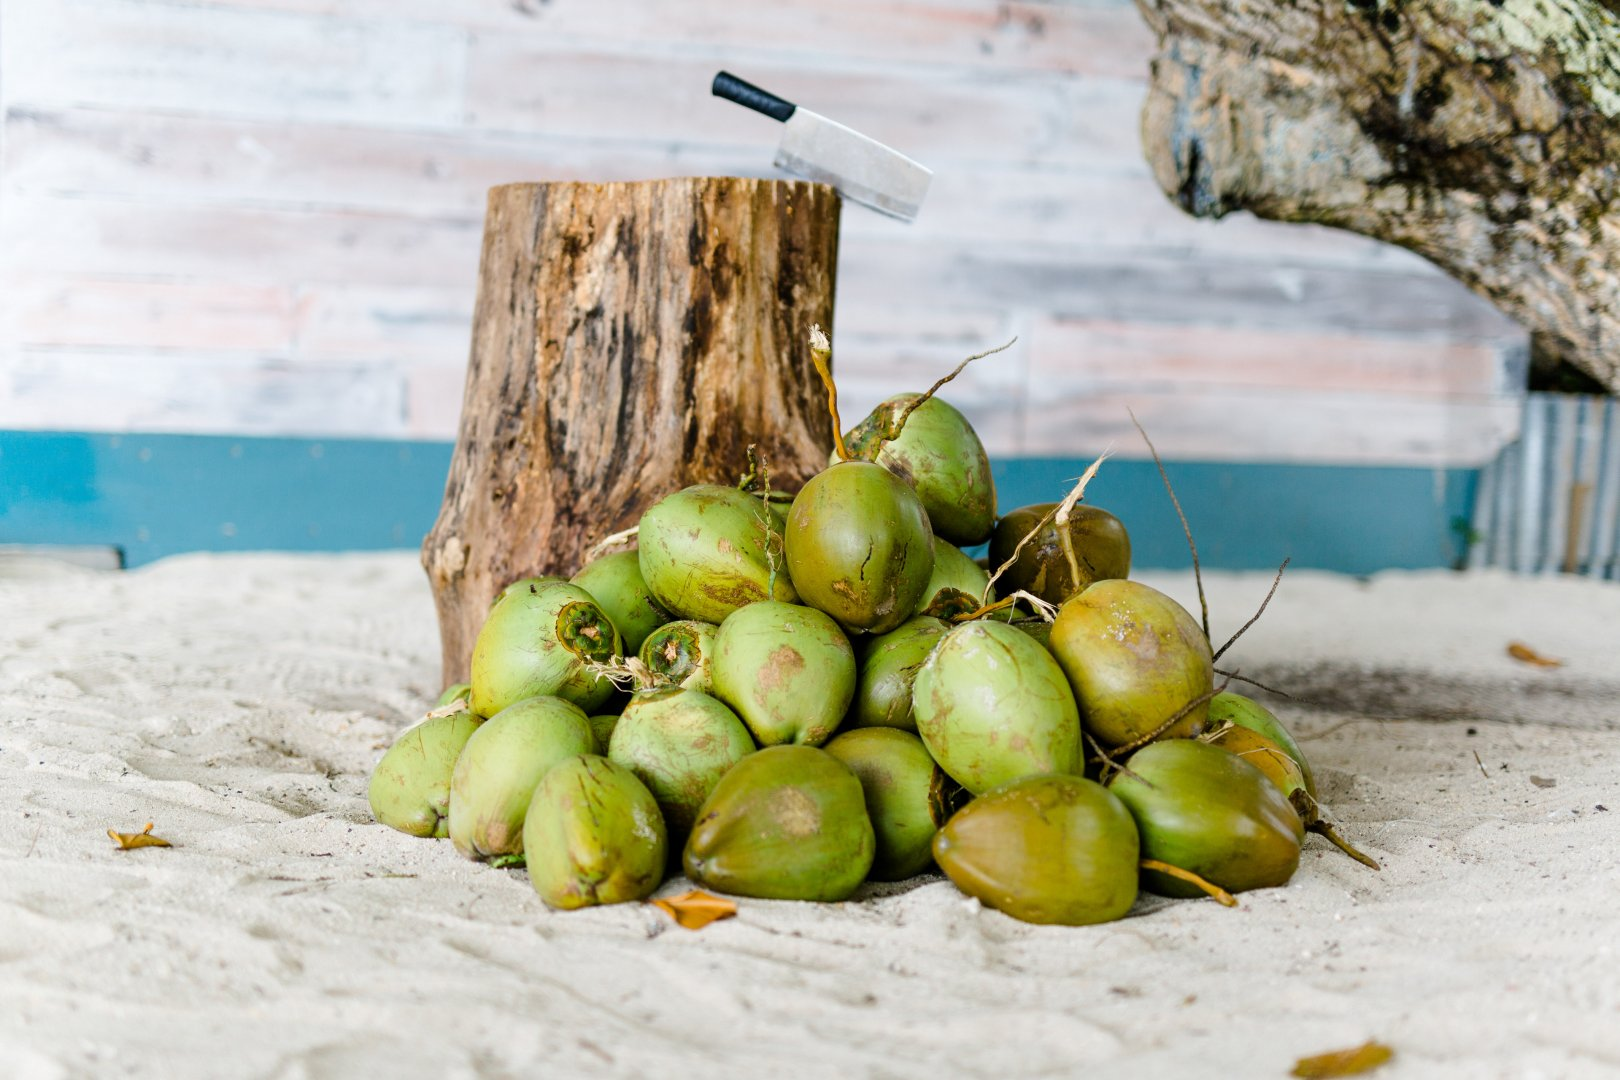 Natural foods Plant Coconut Food Local food Fruit Tomatillo Coconut water Produce Still life photography